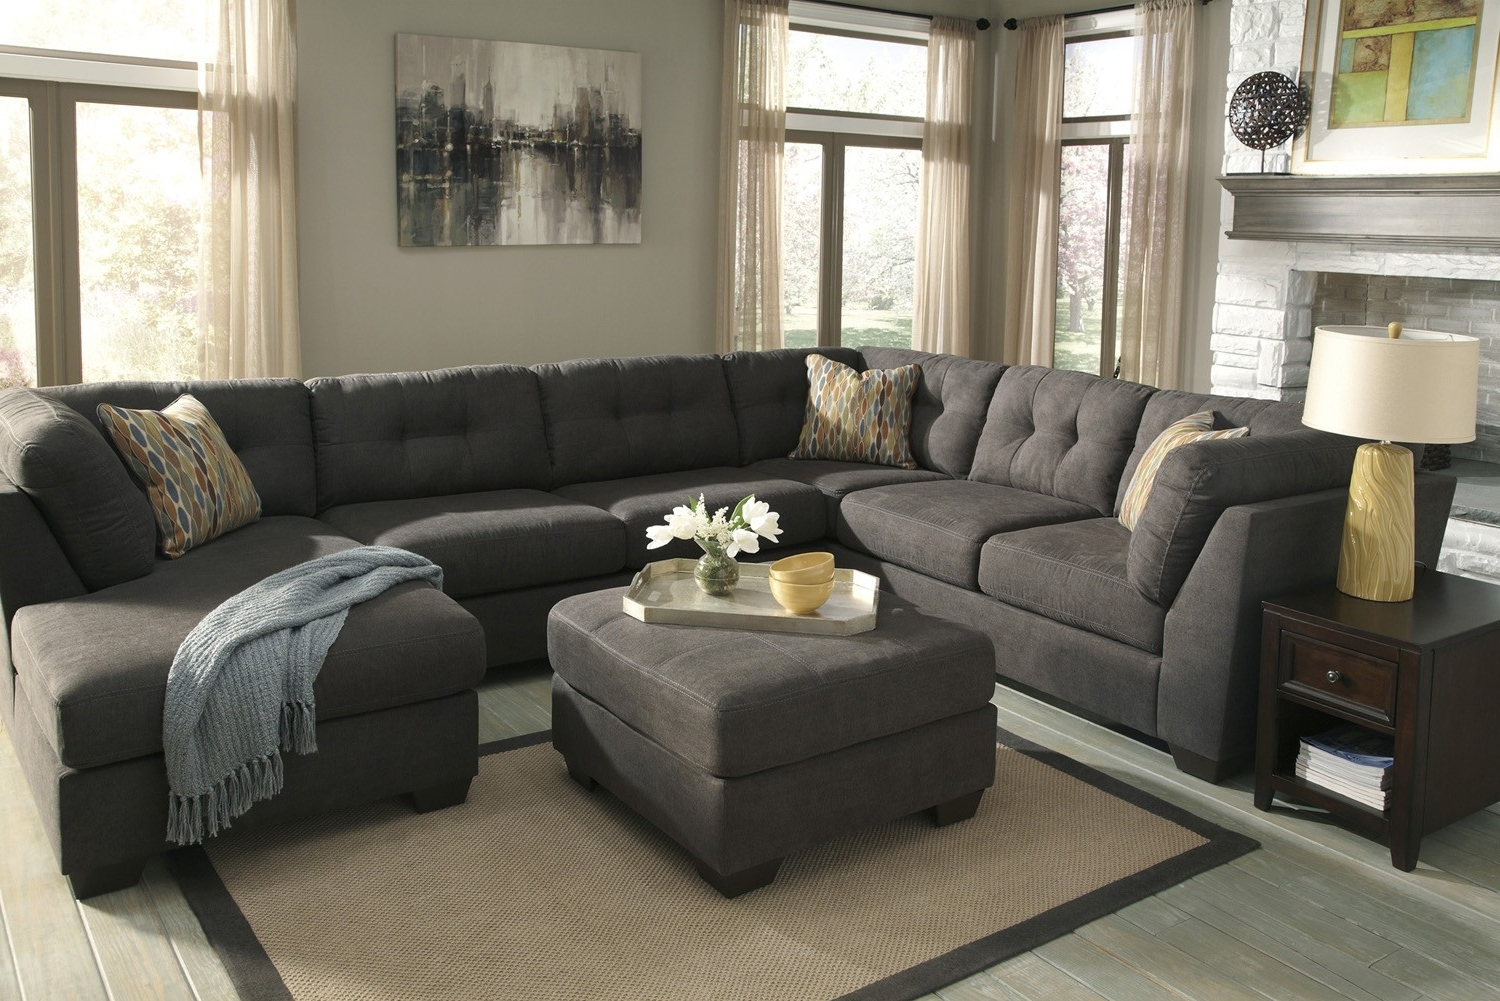 Most Current 3 Piece Sectional Sleeper Sofas For Delta City Steel 3 Piece Sectional Sofa With Right Arm Facing (View 10 of 15)